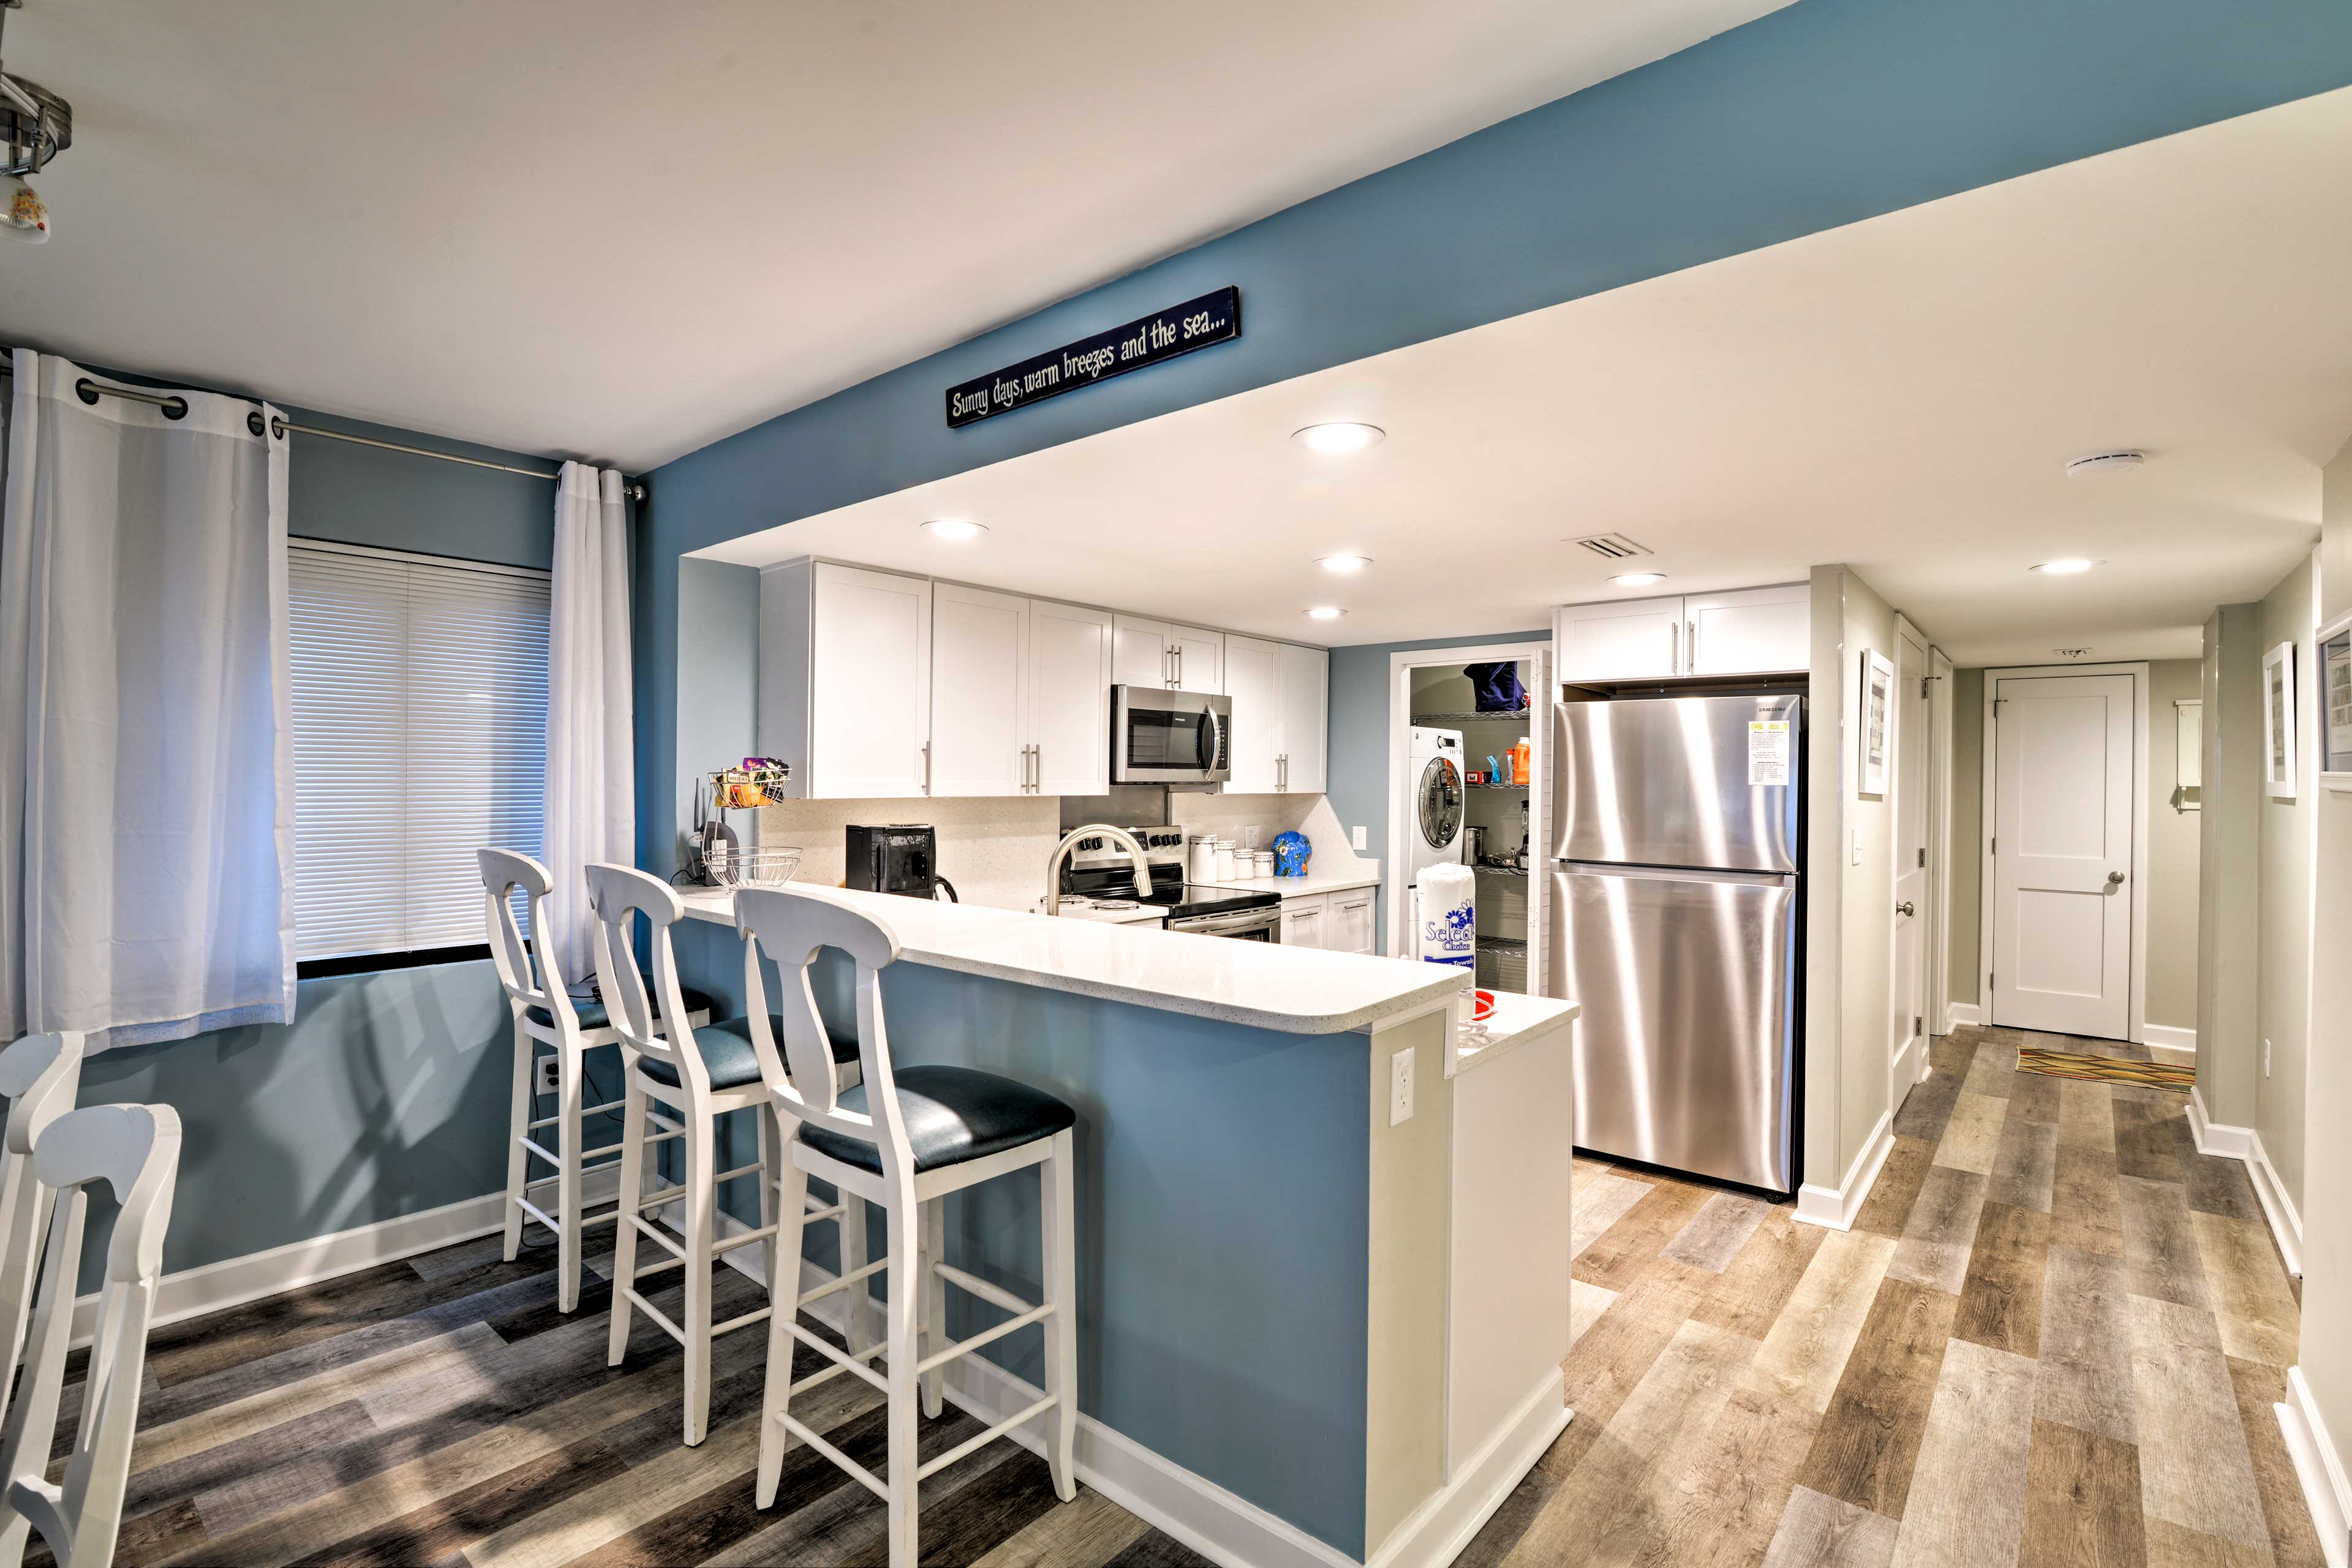 See what's cooking in the kitchen at the breakfast bar with seating for 3.